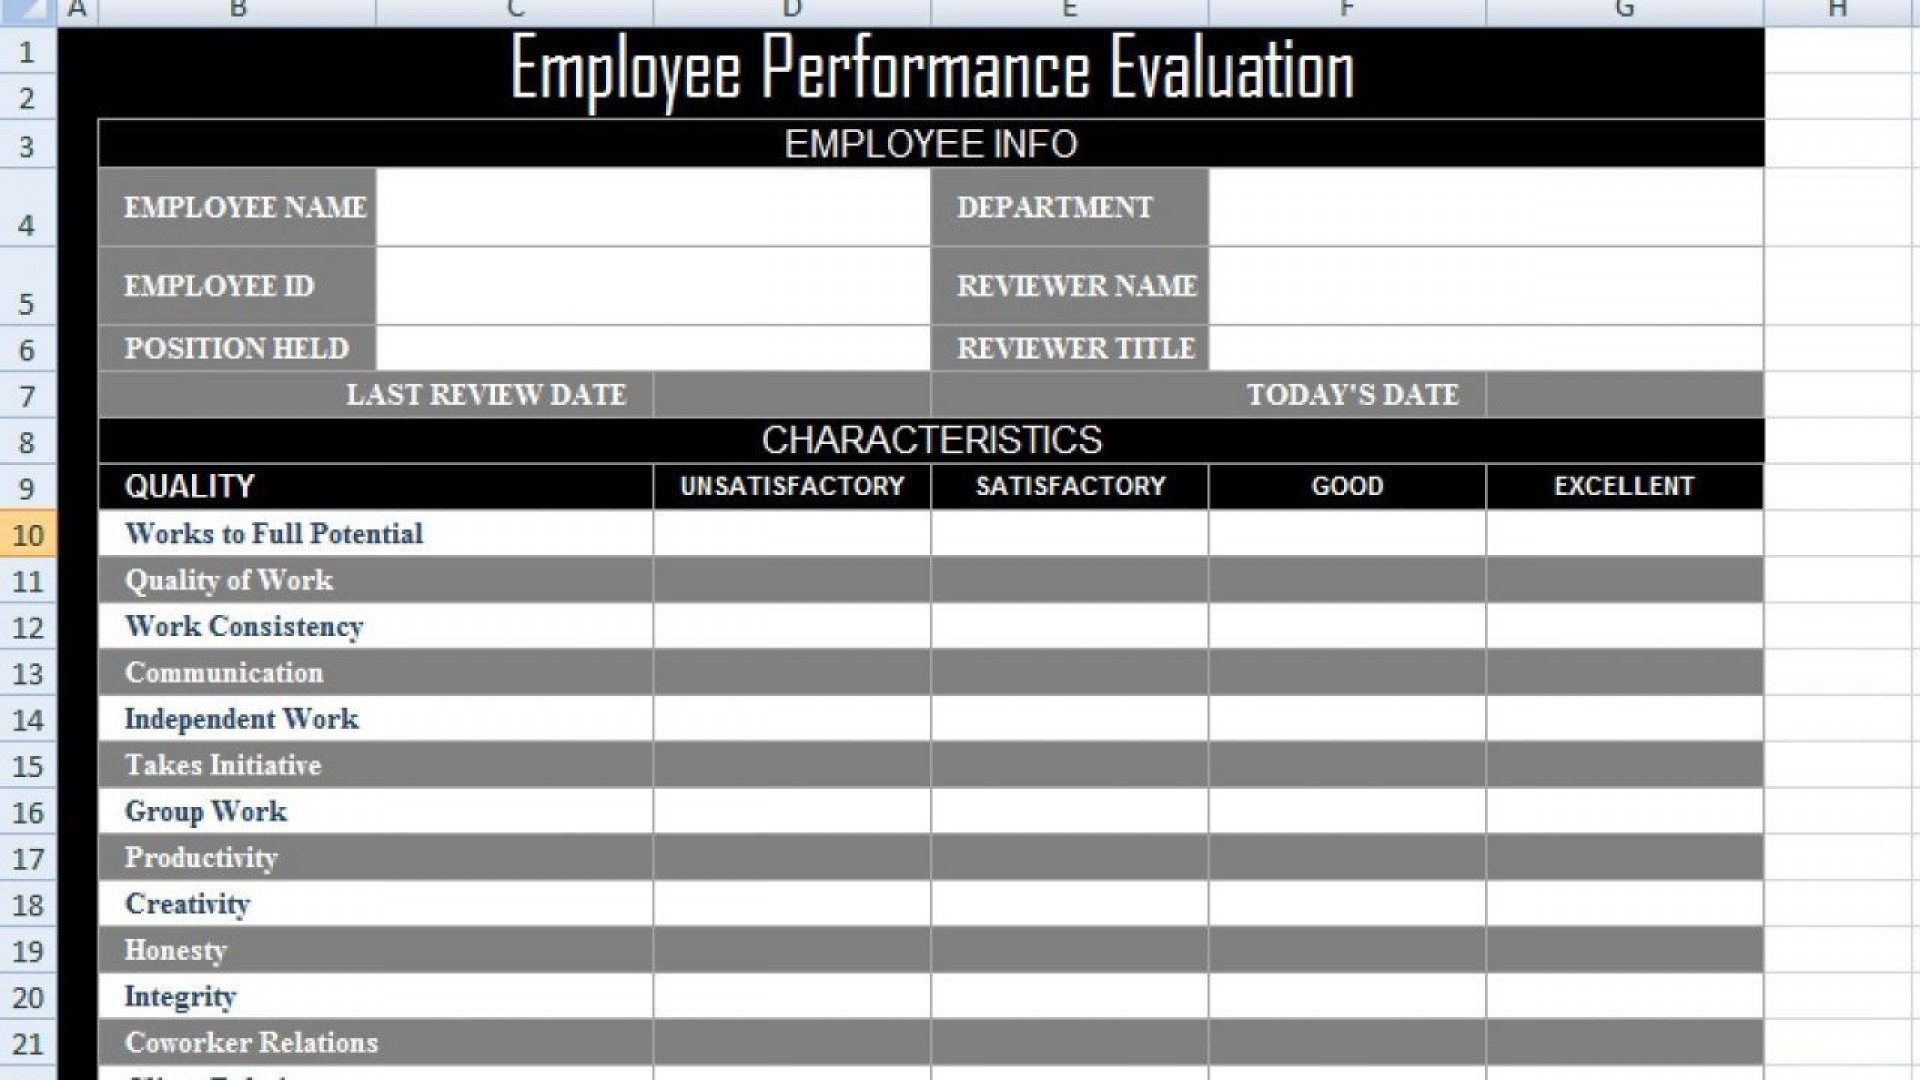 003 Impressive Employee Evaluation Form Template Photo  Word Self Free1920